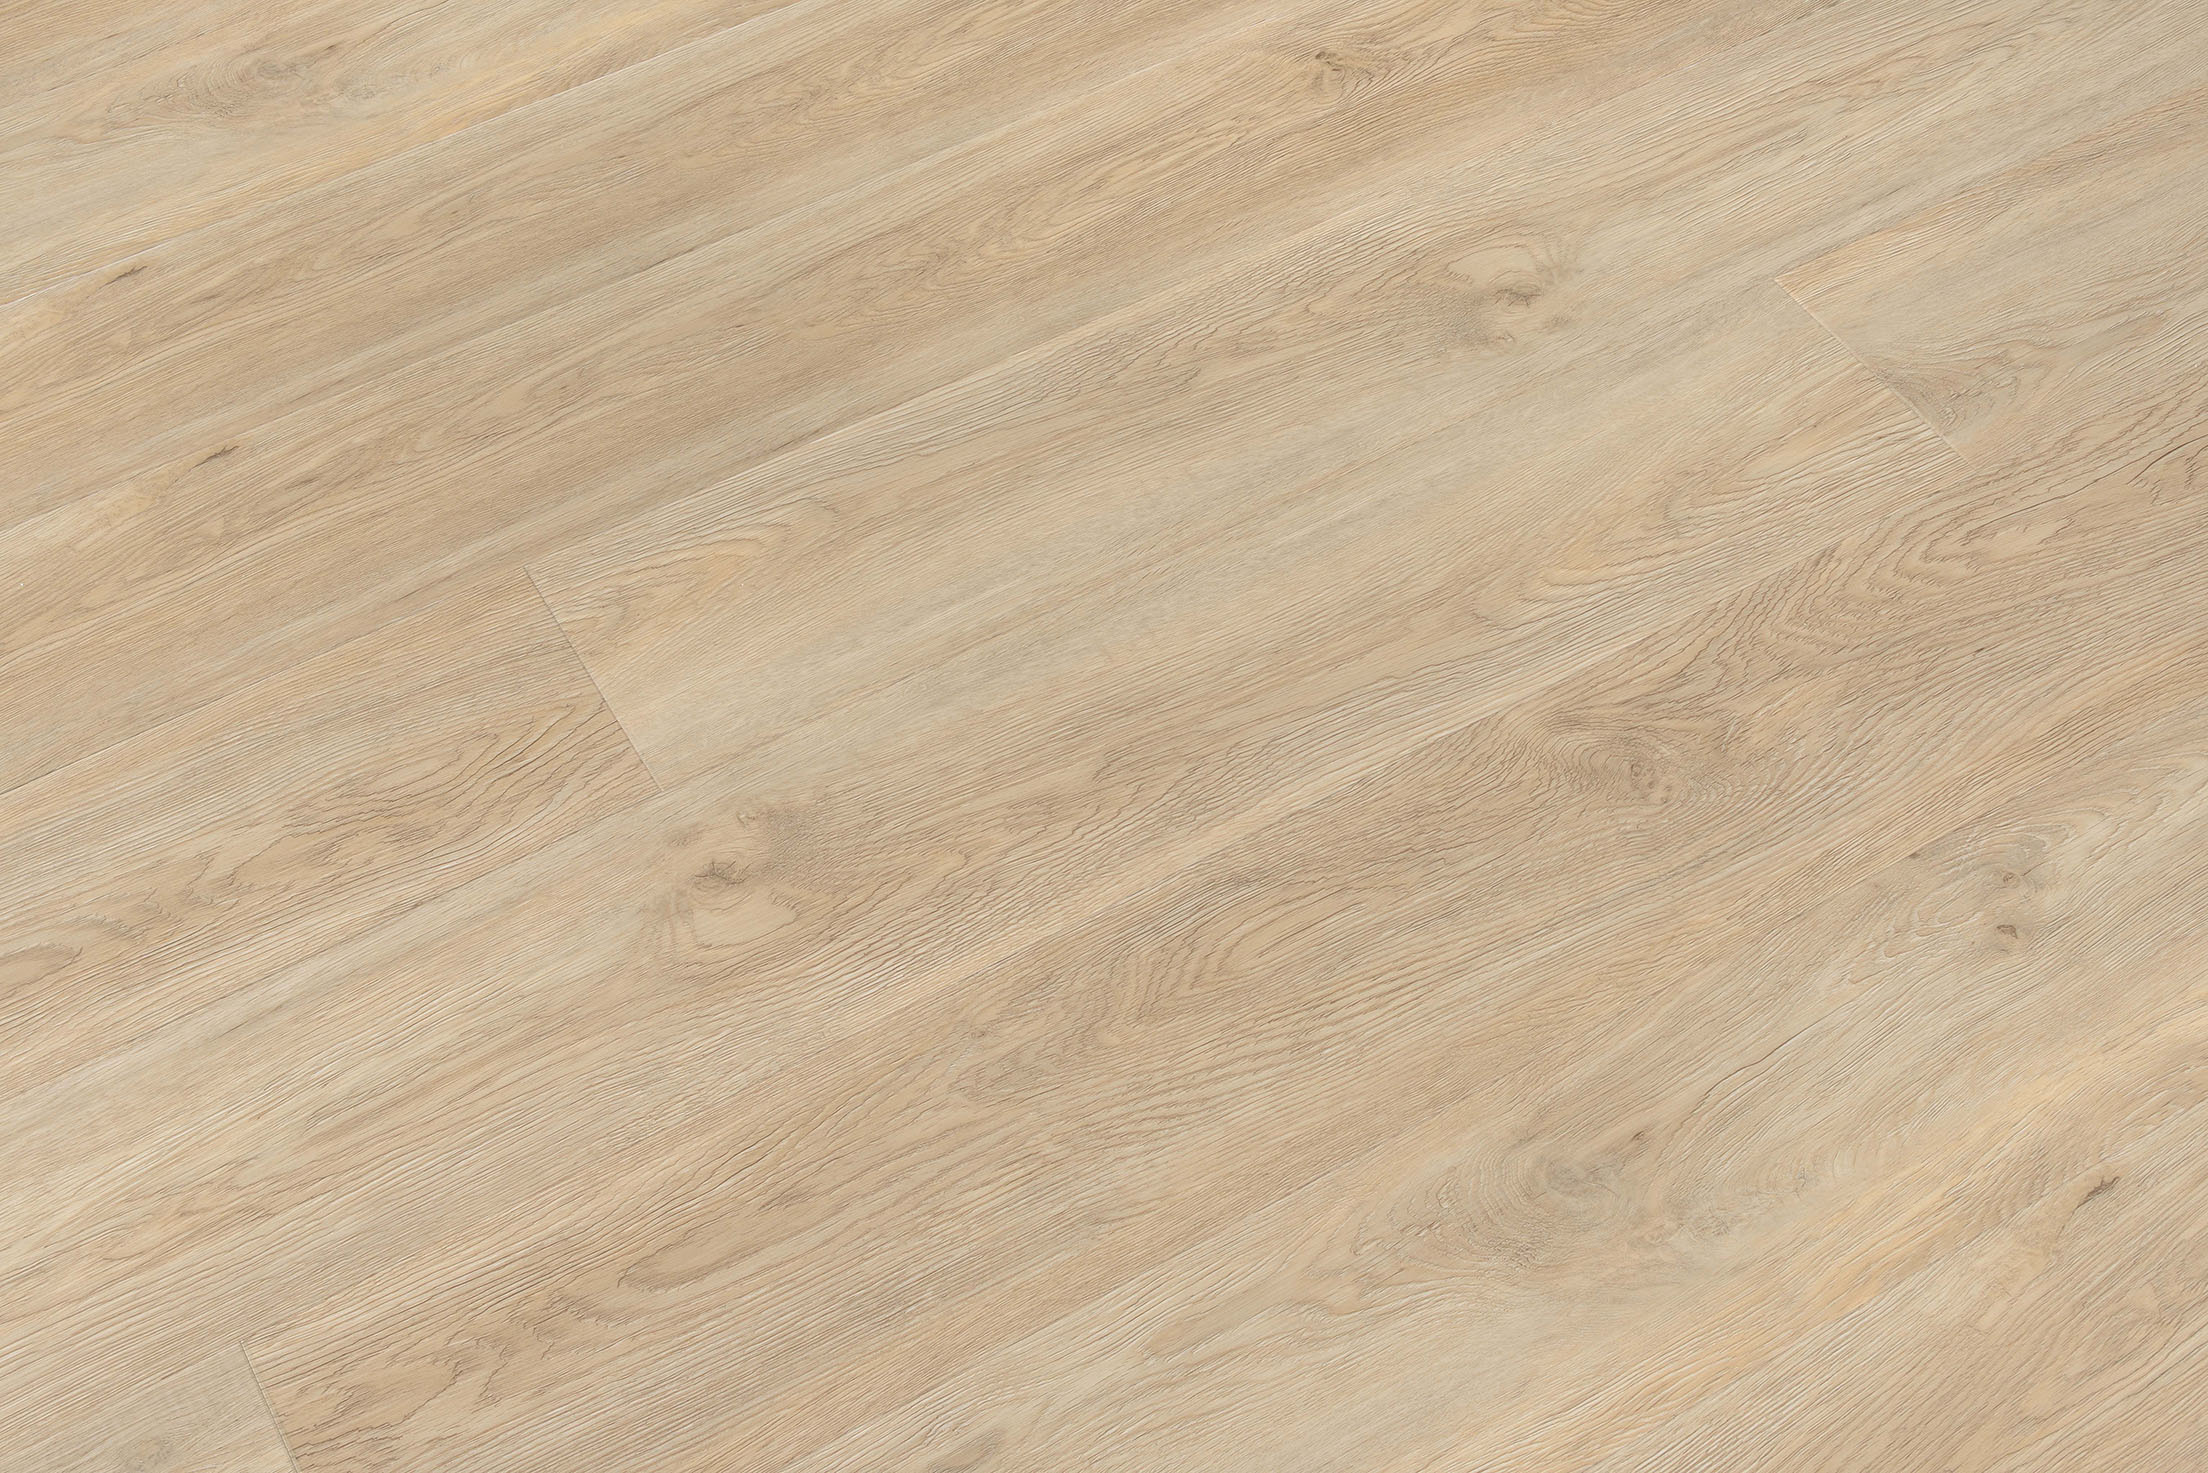 Market place evp signature collection everyday oak 7 for Evp flooring